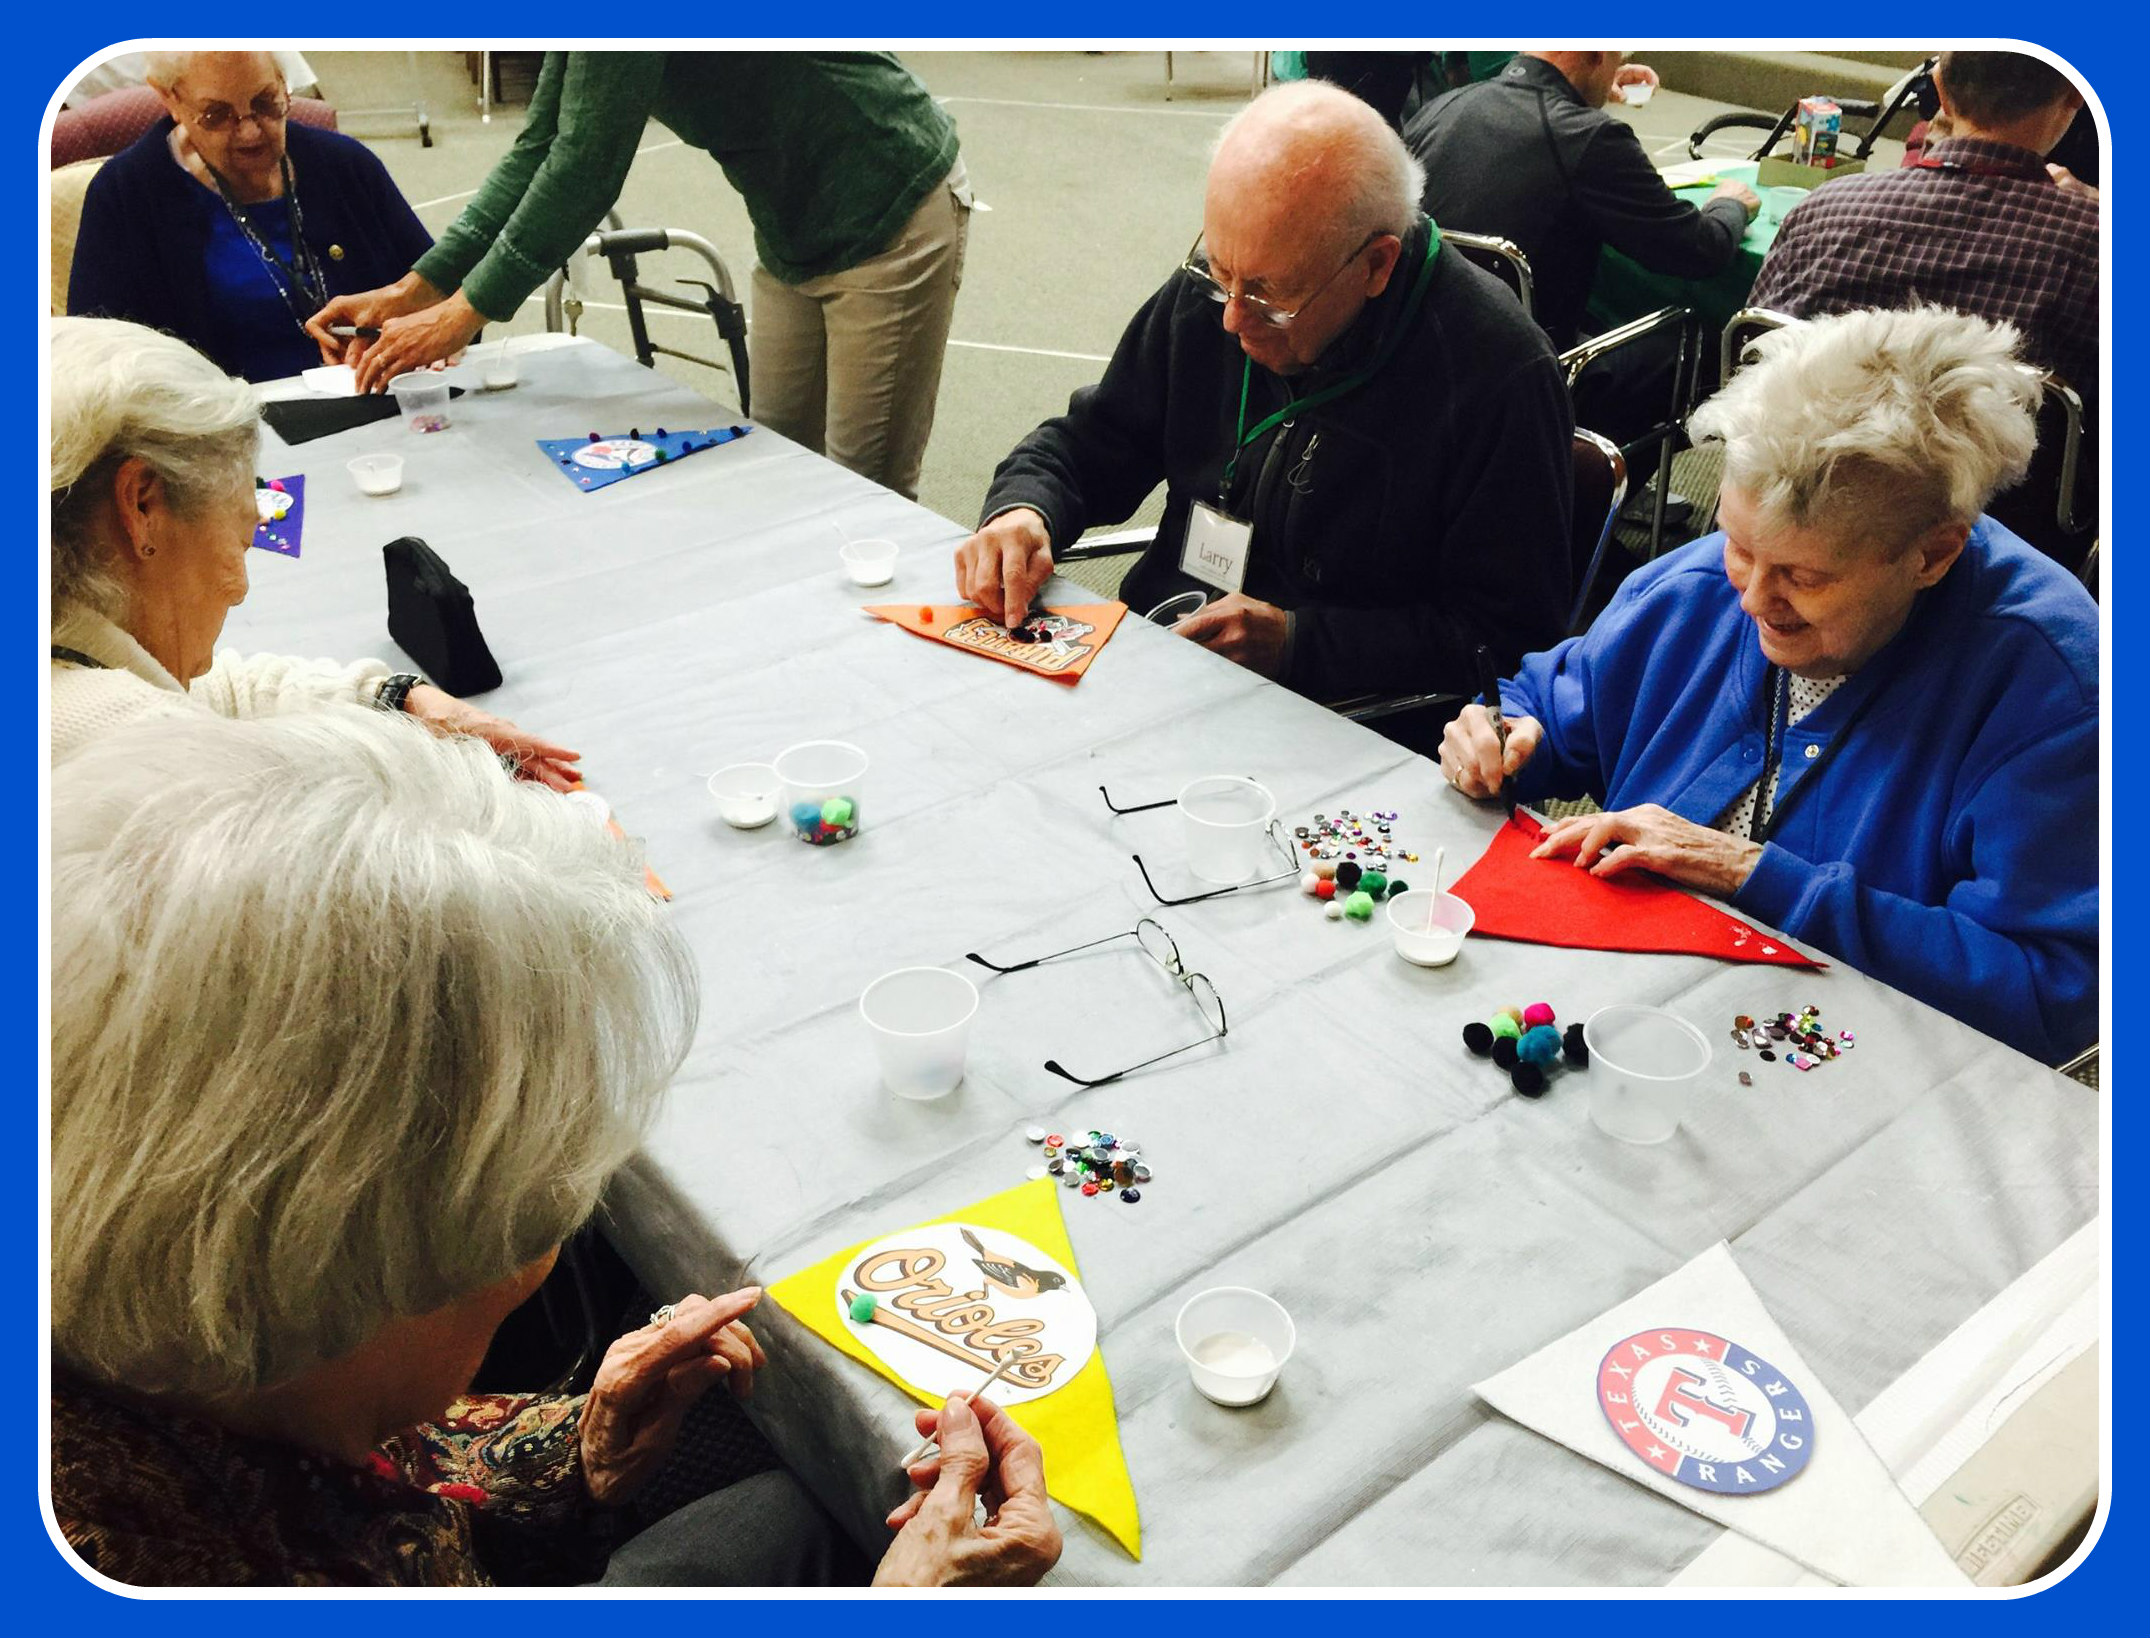 Top 5 Reasons to Use Adult Day Care